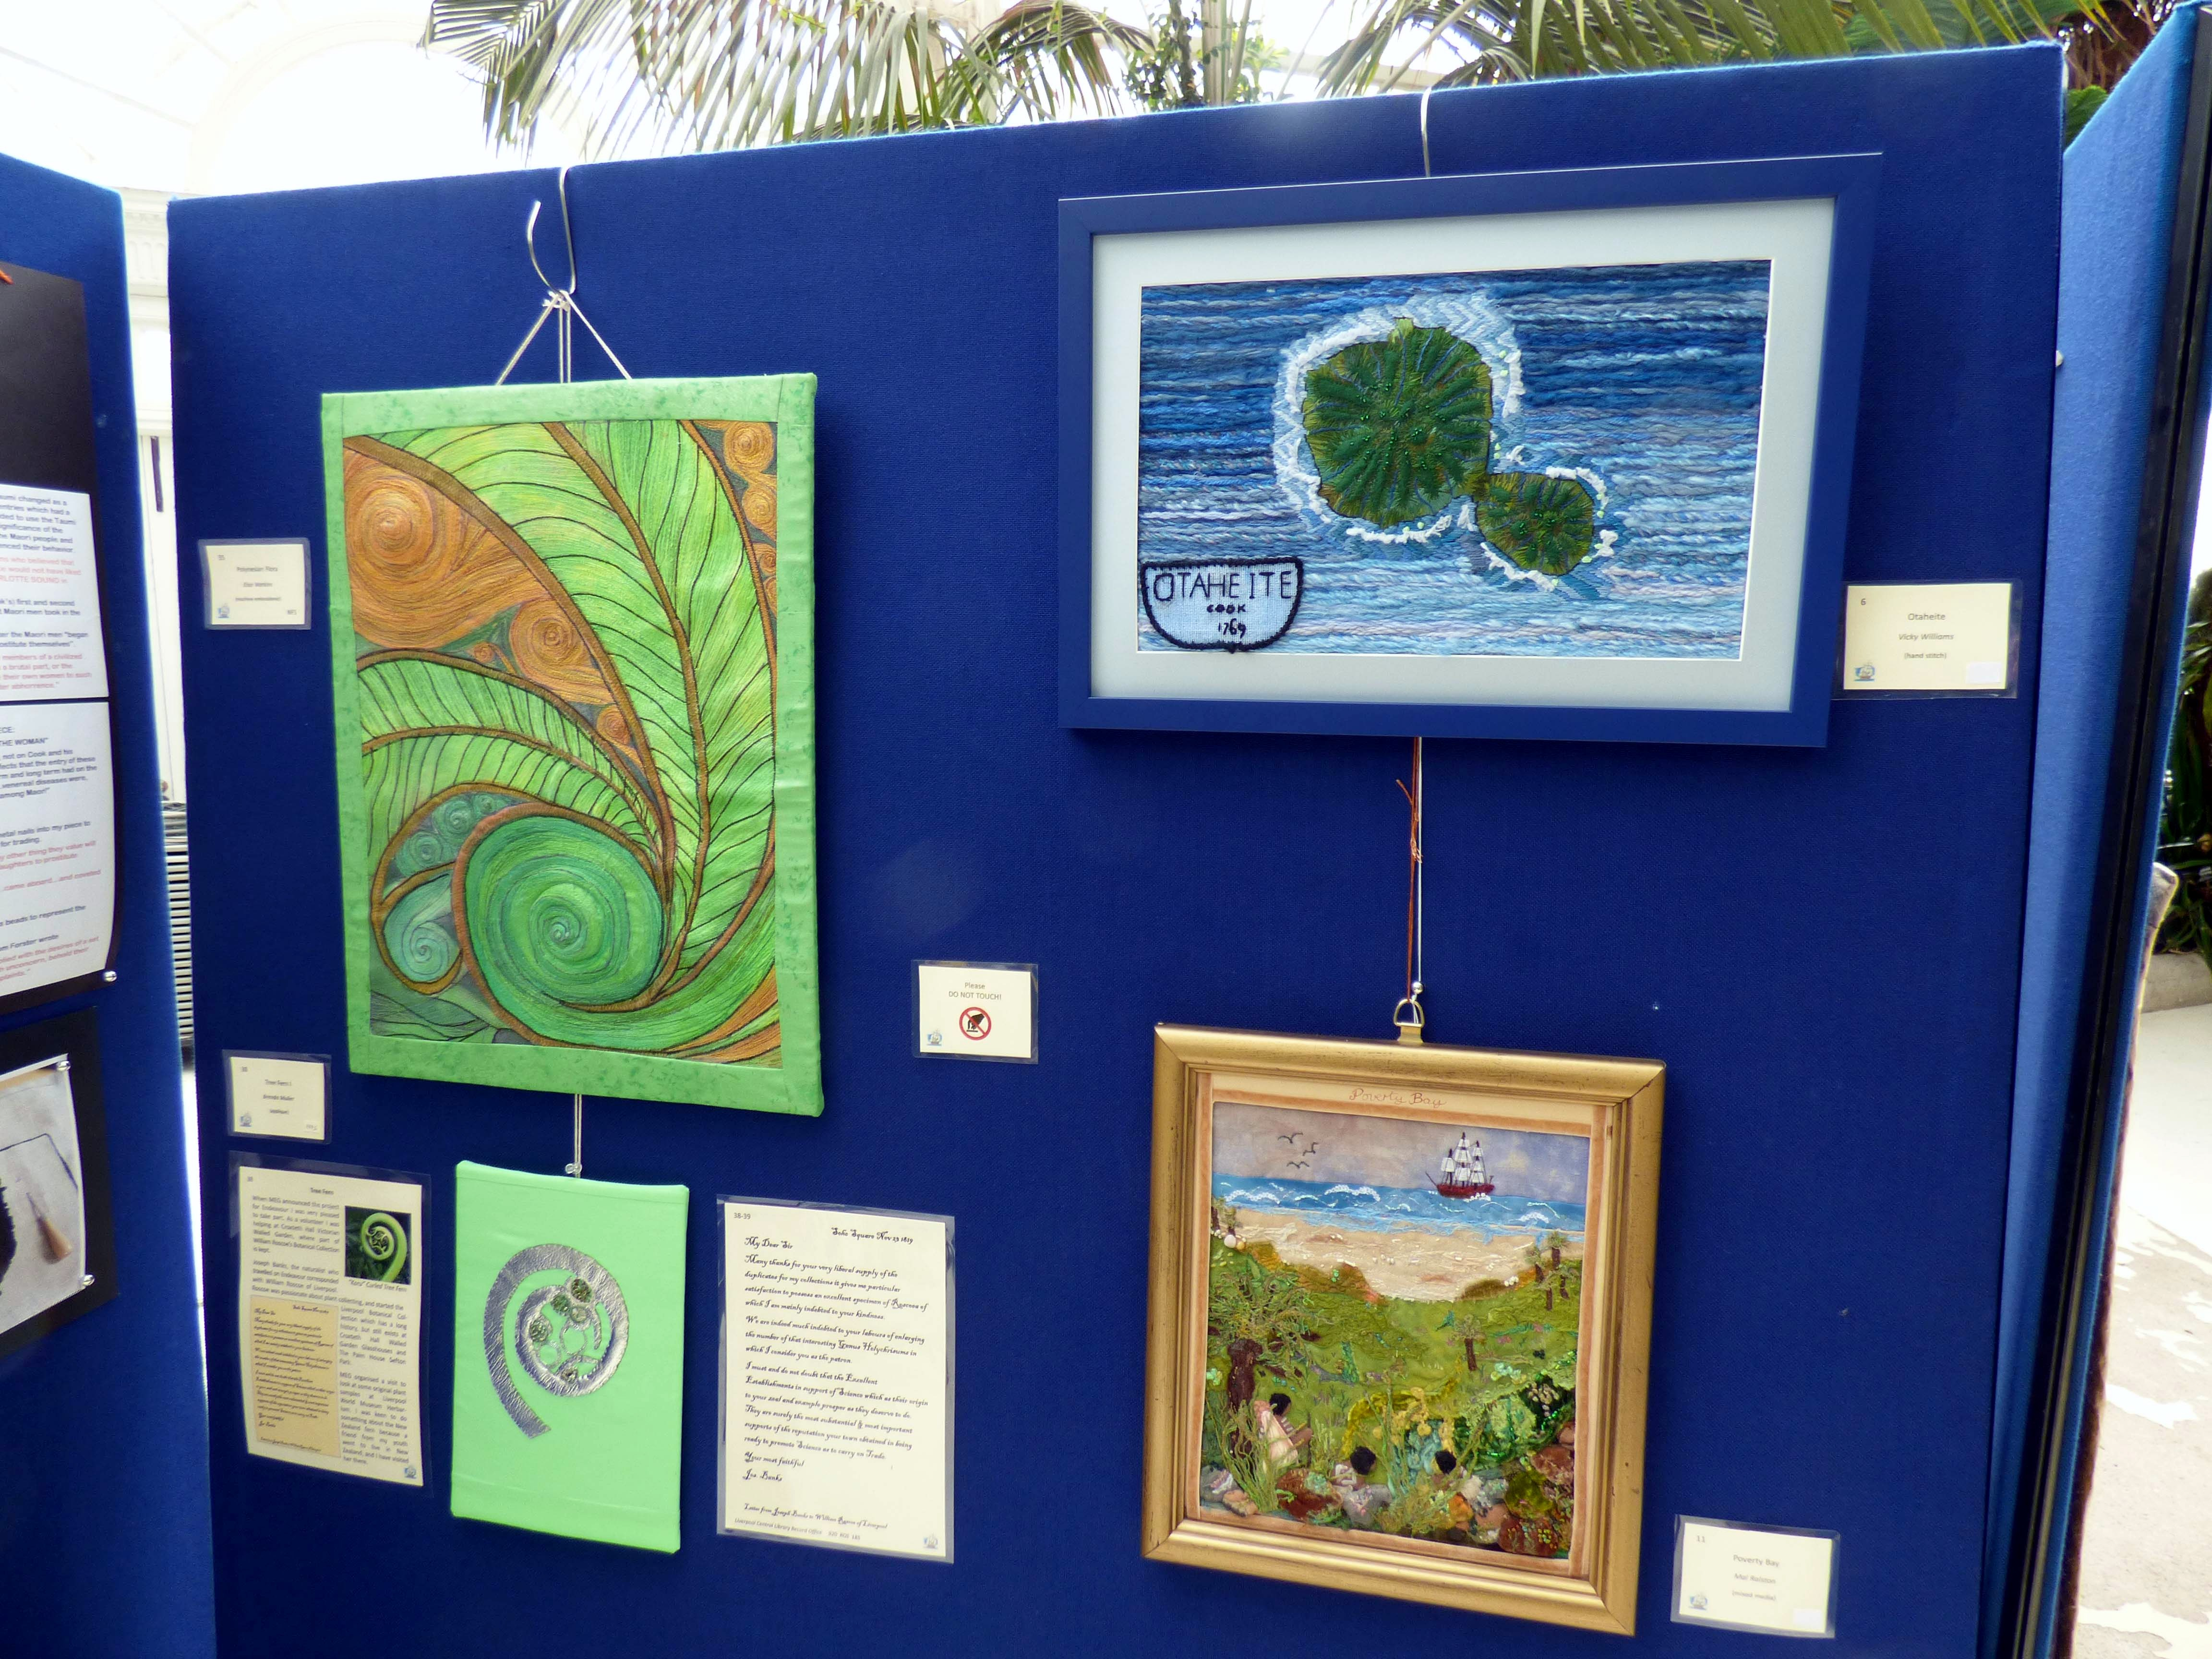 section of Endeavour exhibition at Sefton Park Palm House 2019